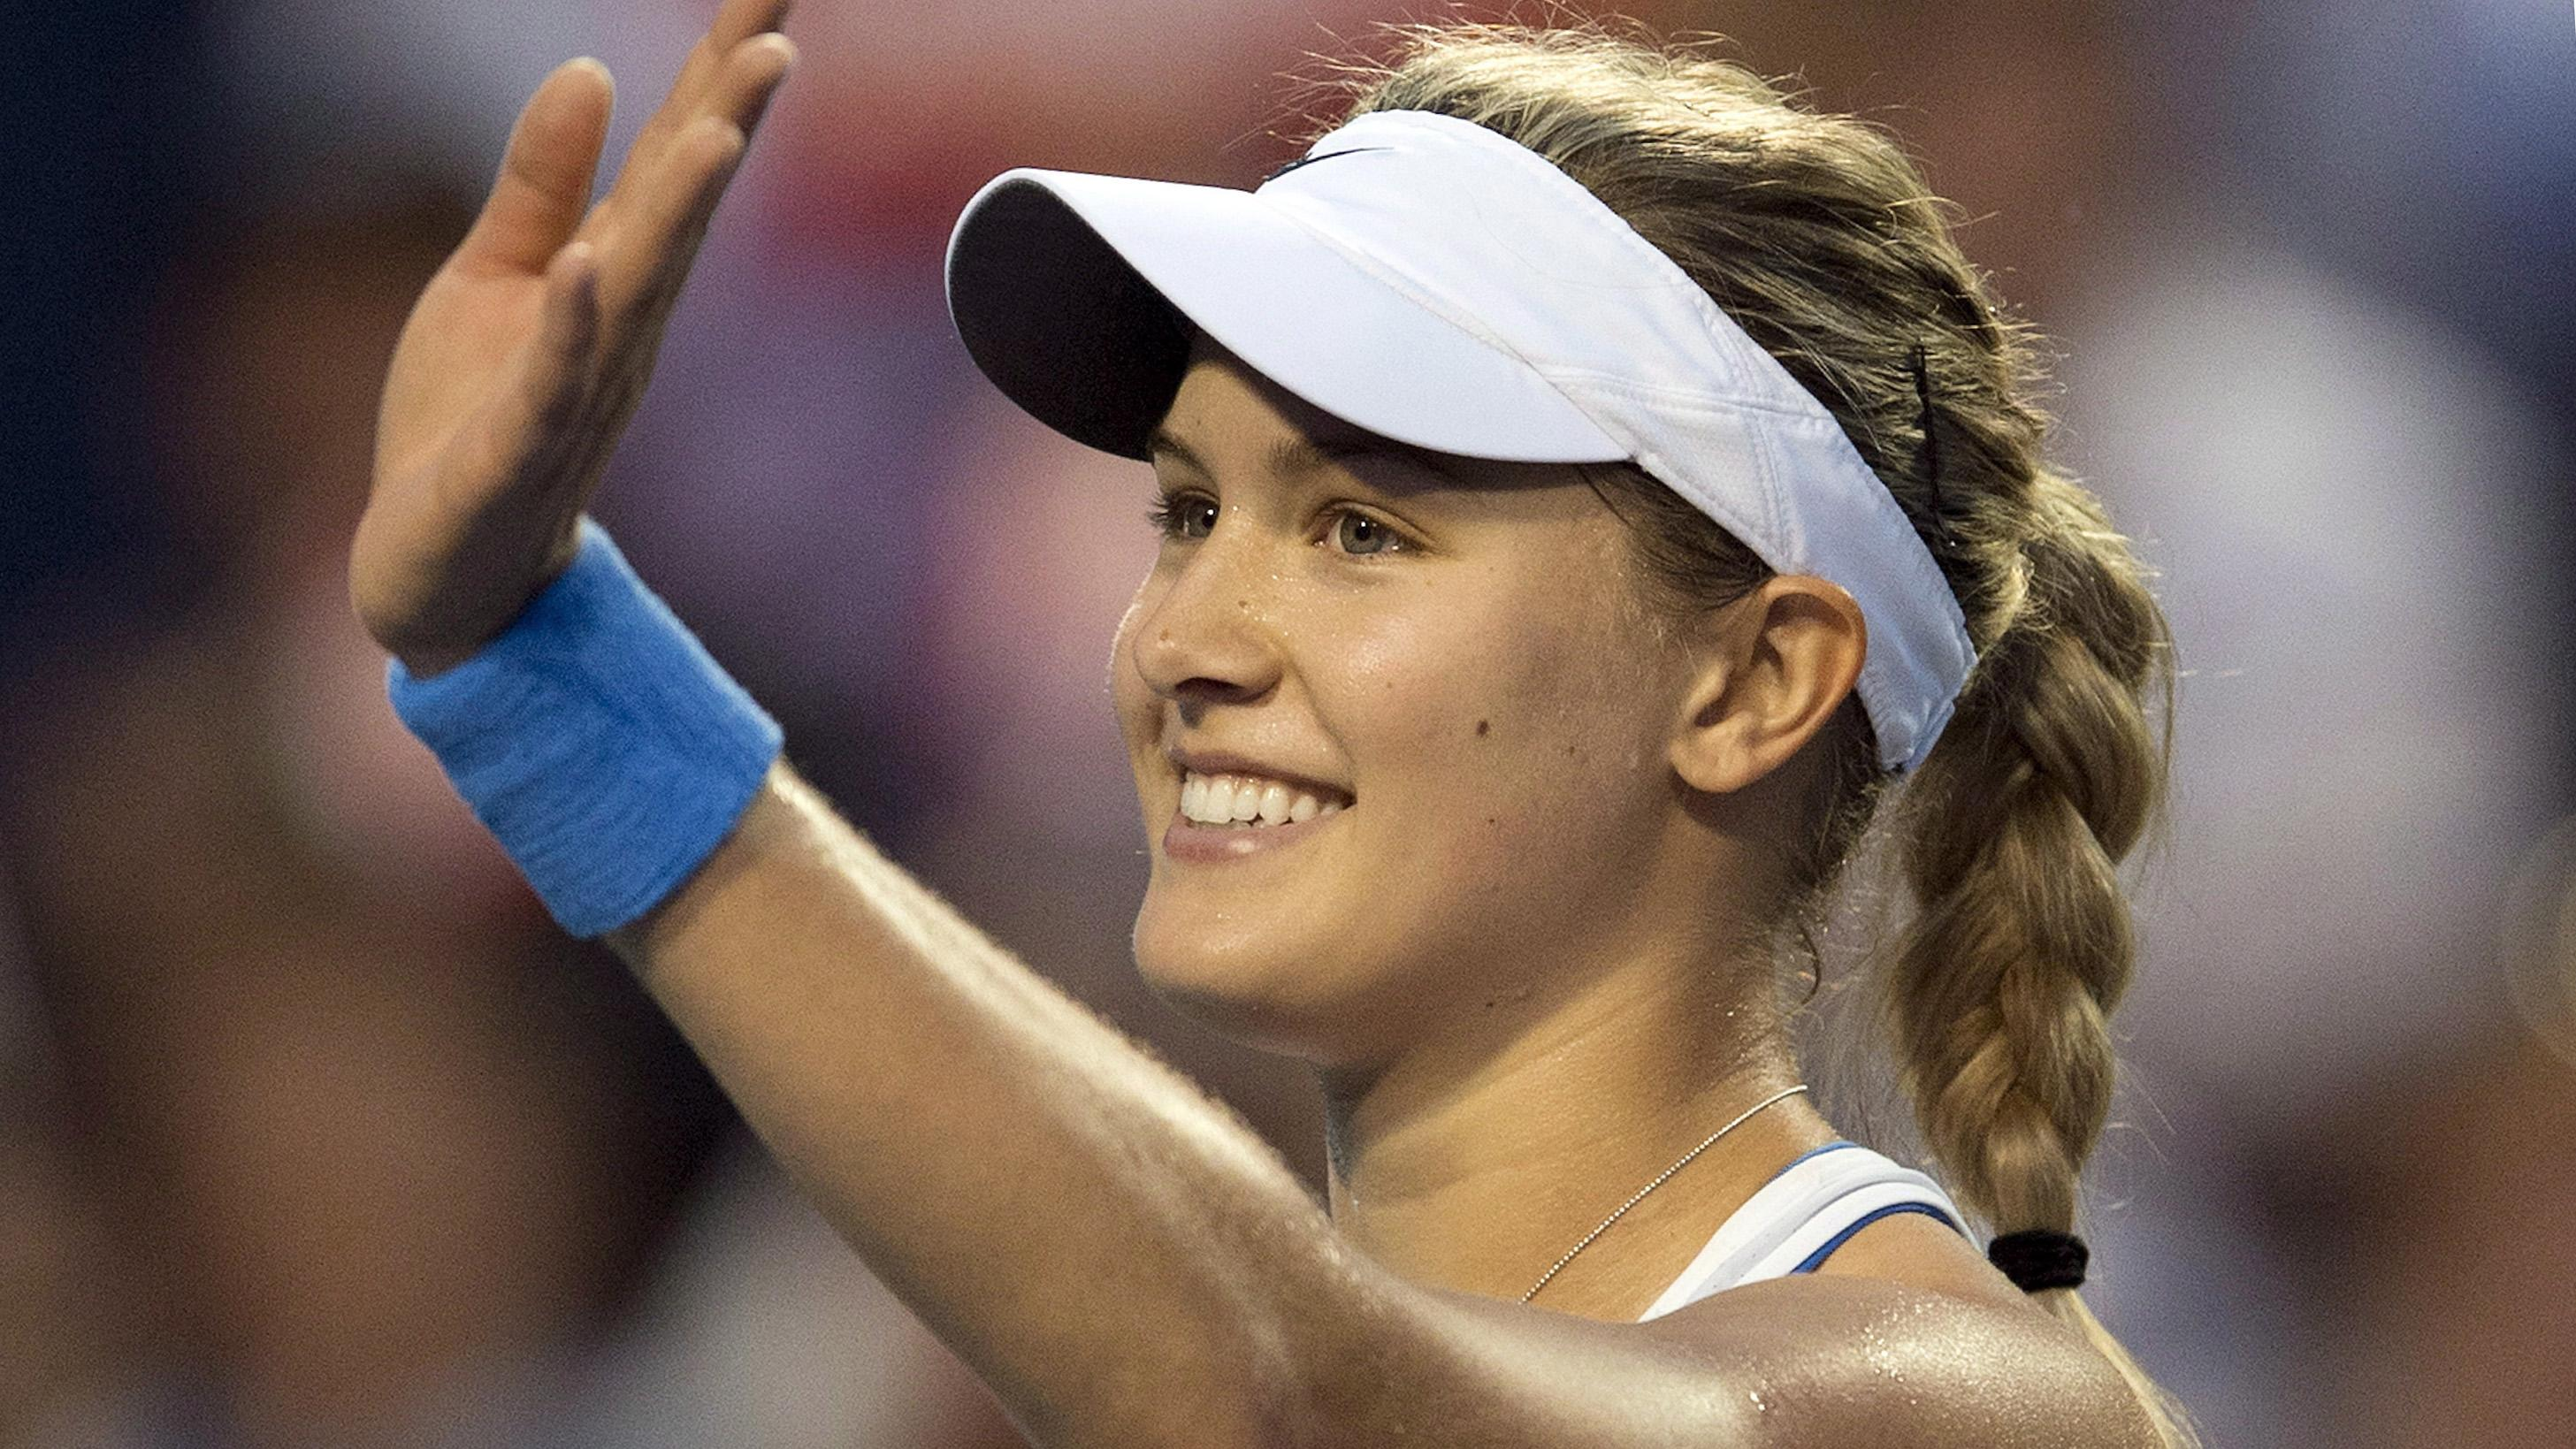 Hd Eugenie Bouchard Saying Bye Bye To Audience Still Free Background Mobile Download Photo